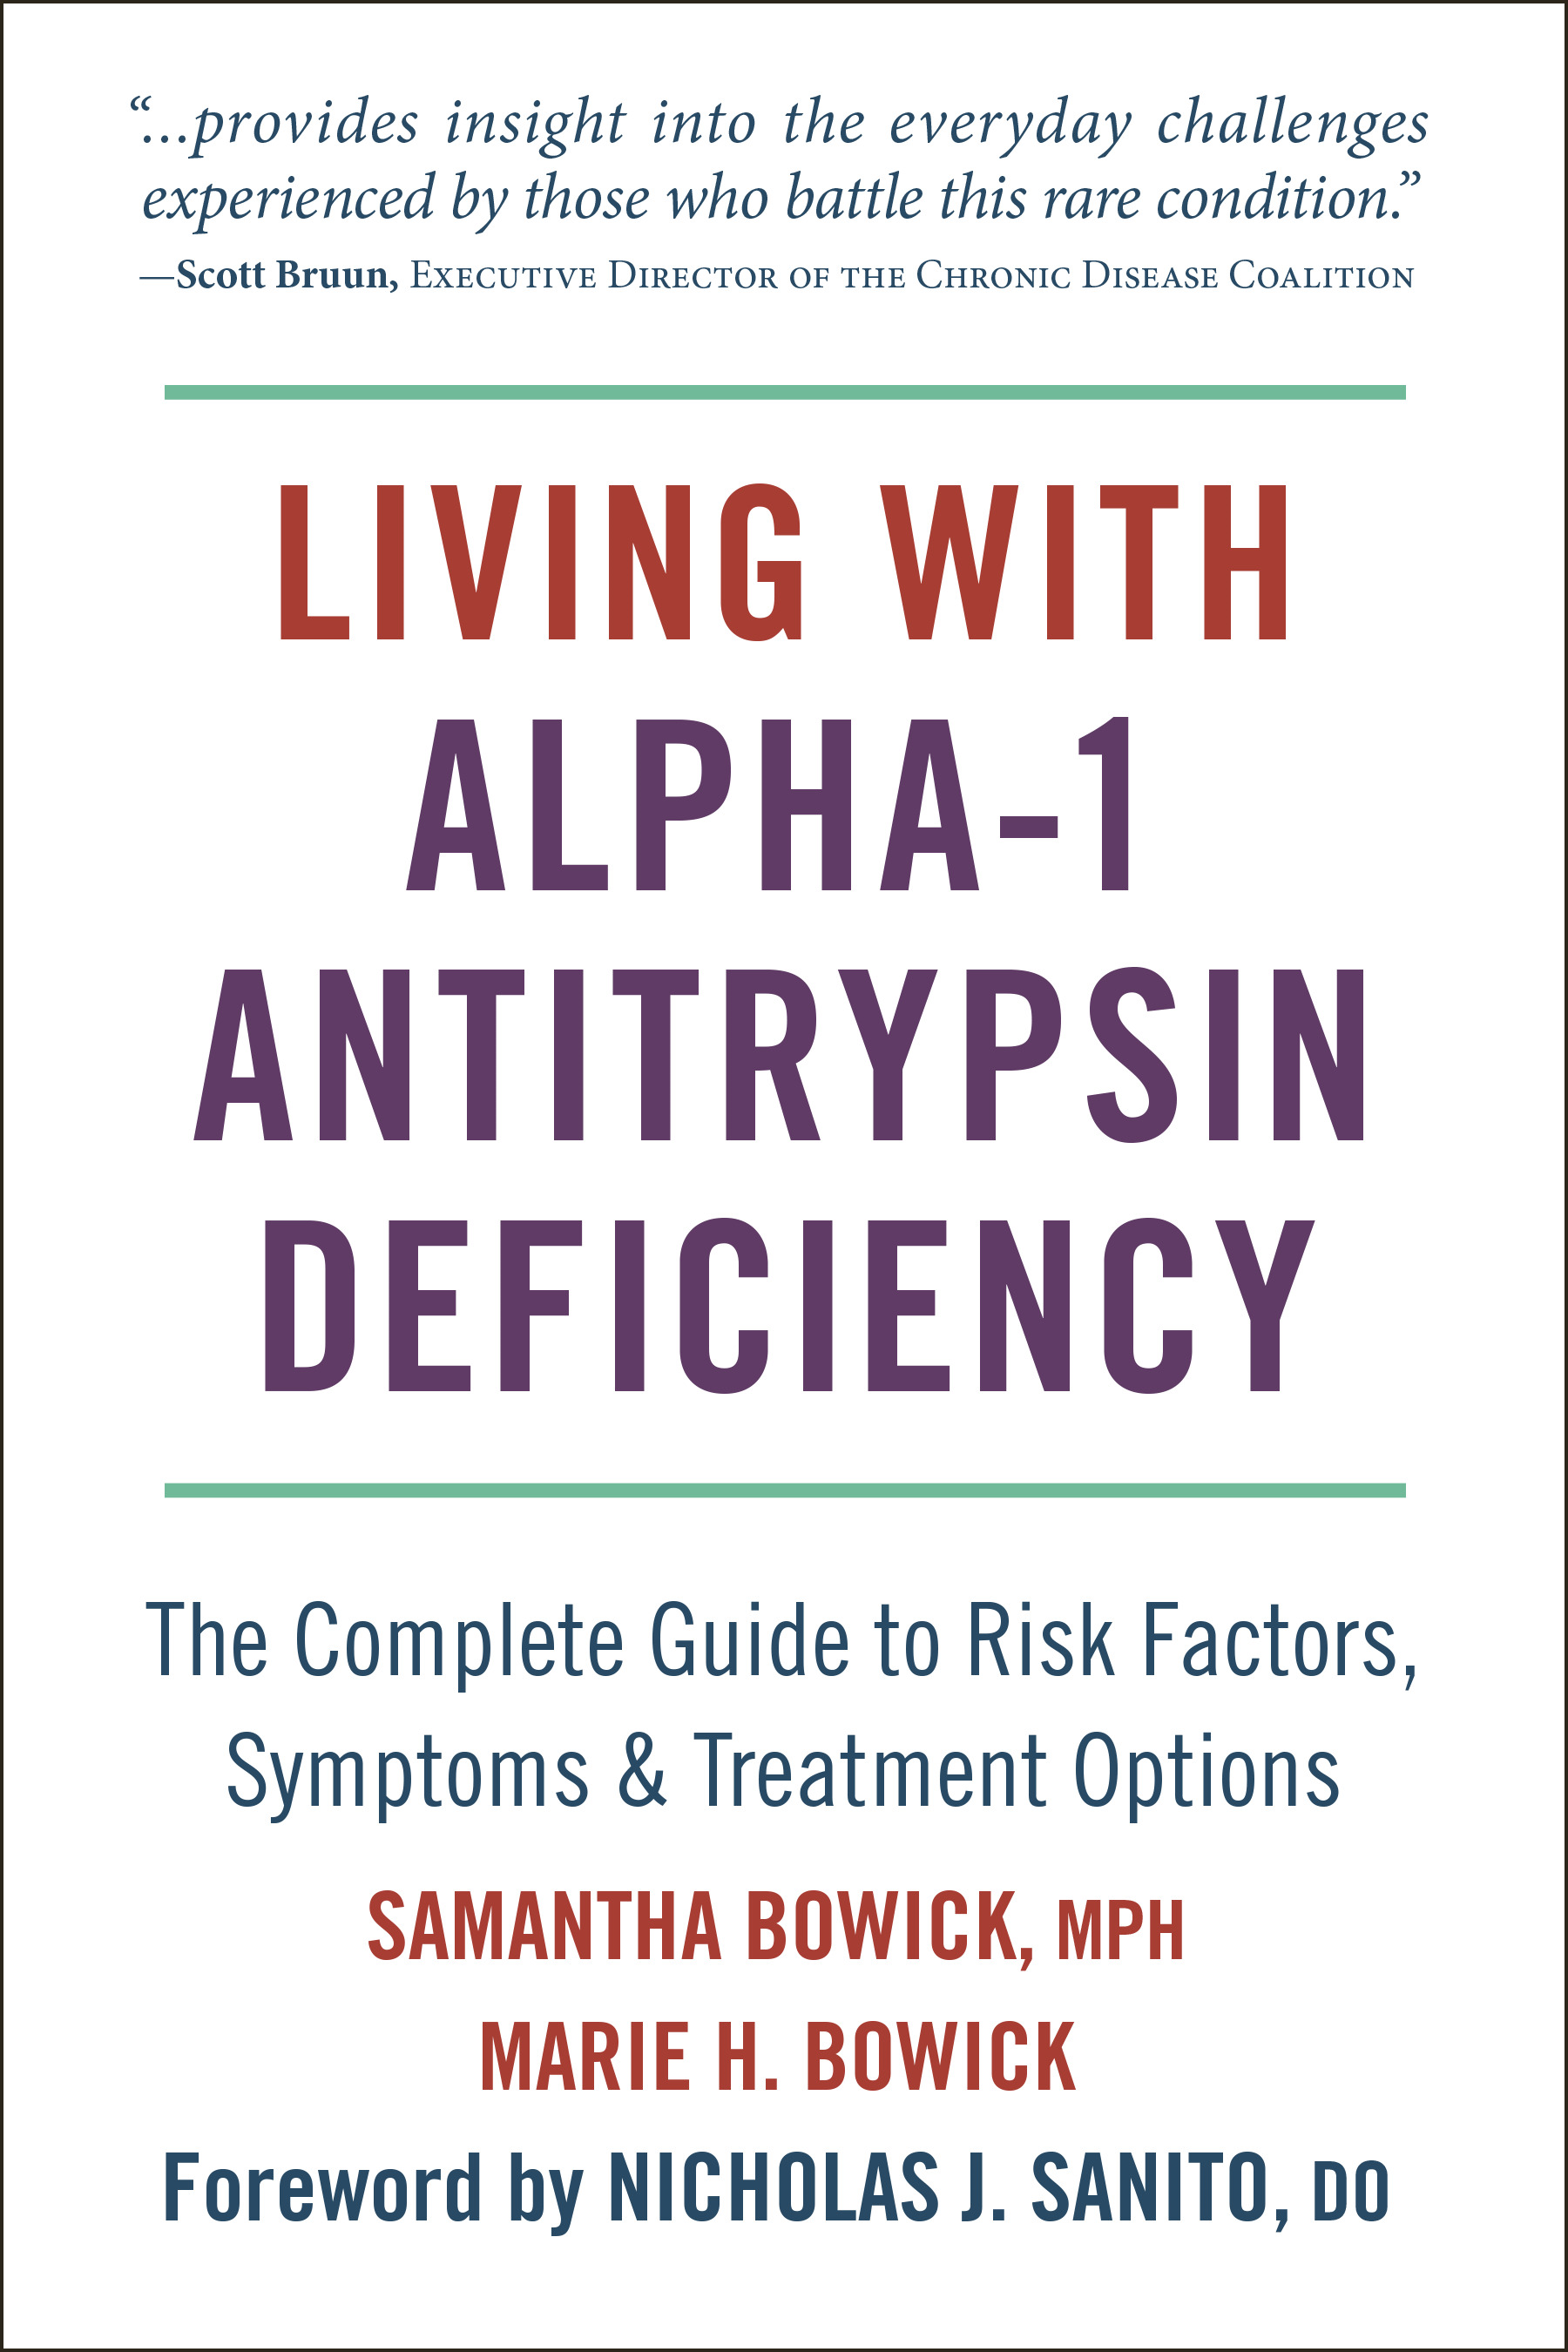 Living with Alpha-1 Antitrypsin Deficiency (A1AD)